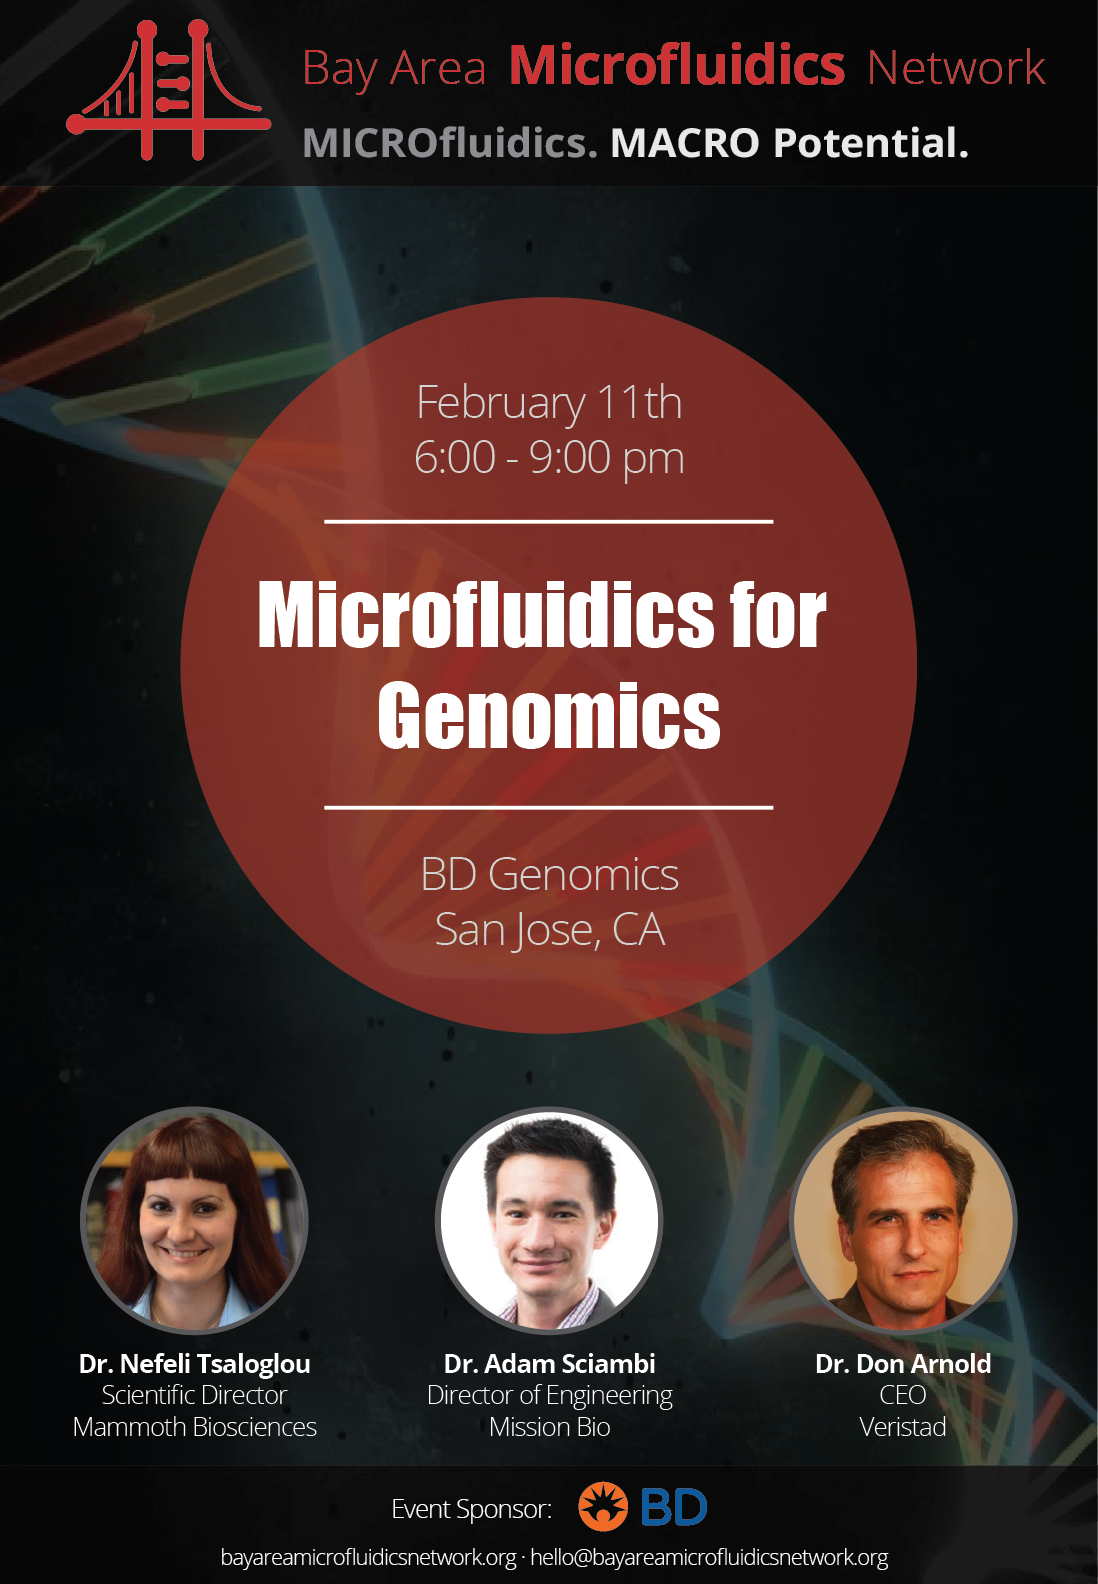 Bay Area Microfluidics Network BD event announcement flyer